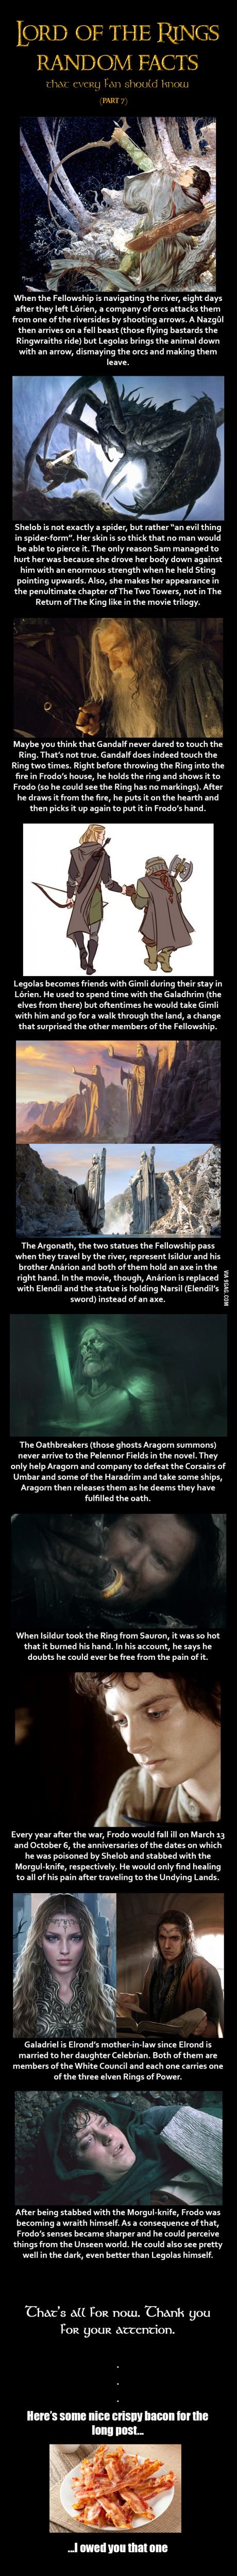 Here are some Lord of the Rings random facts (Part 7)